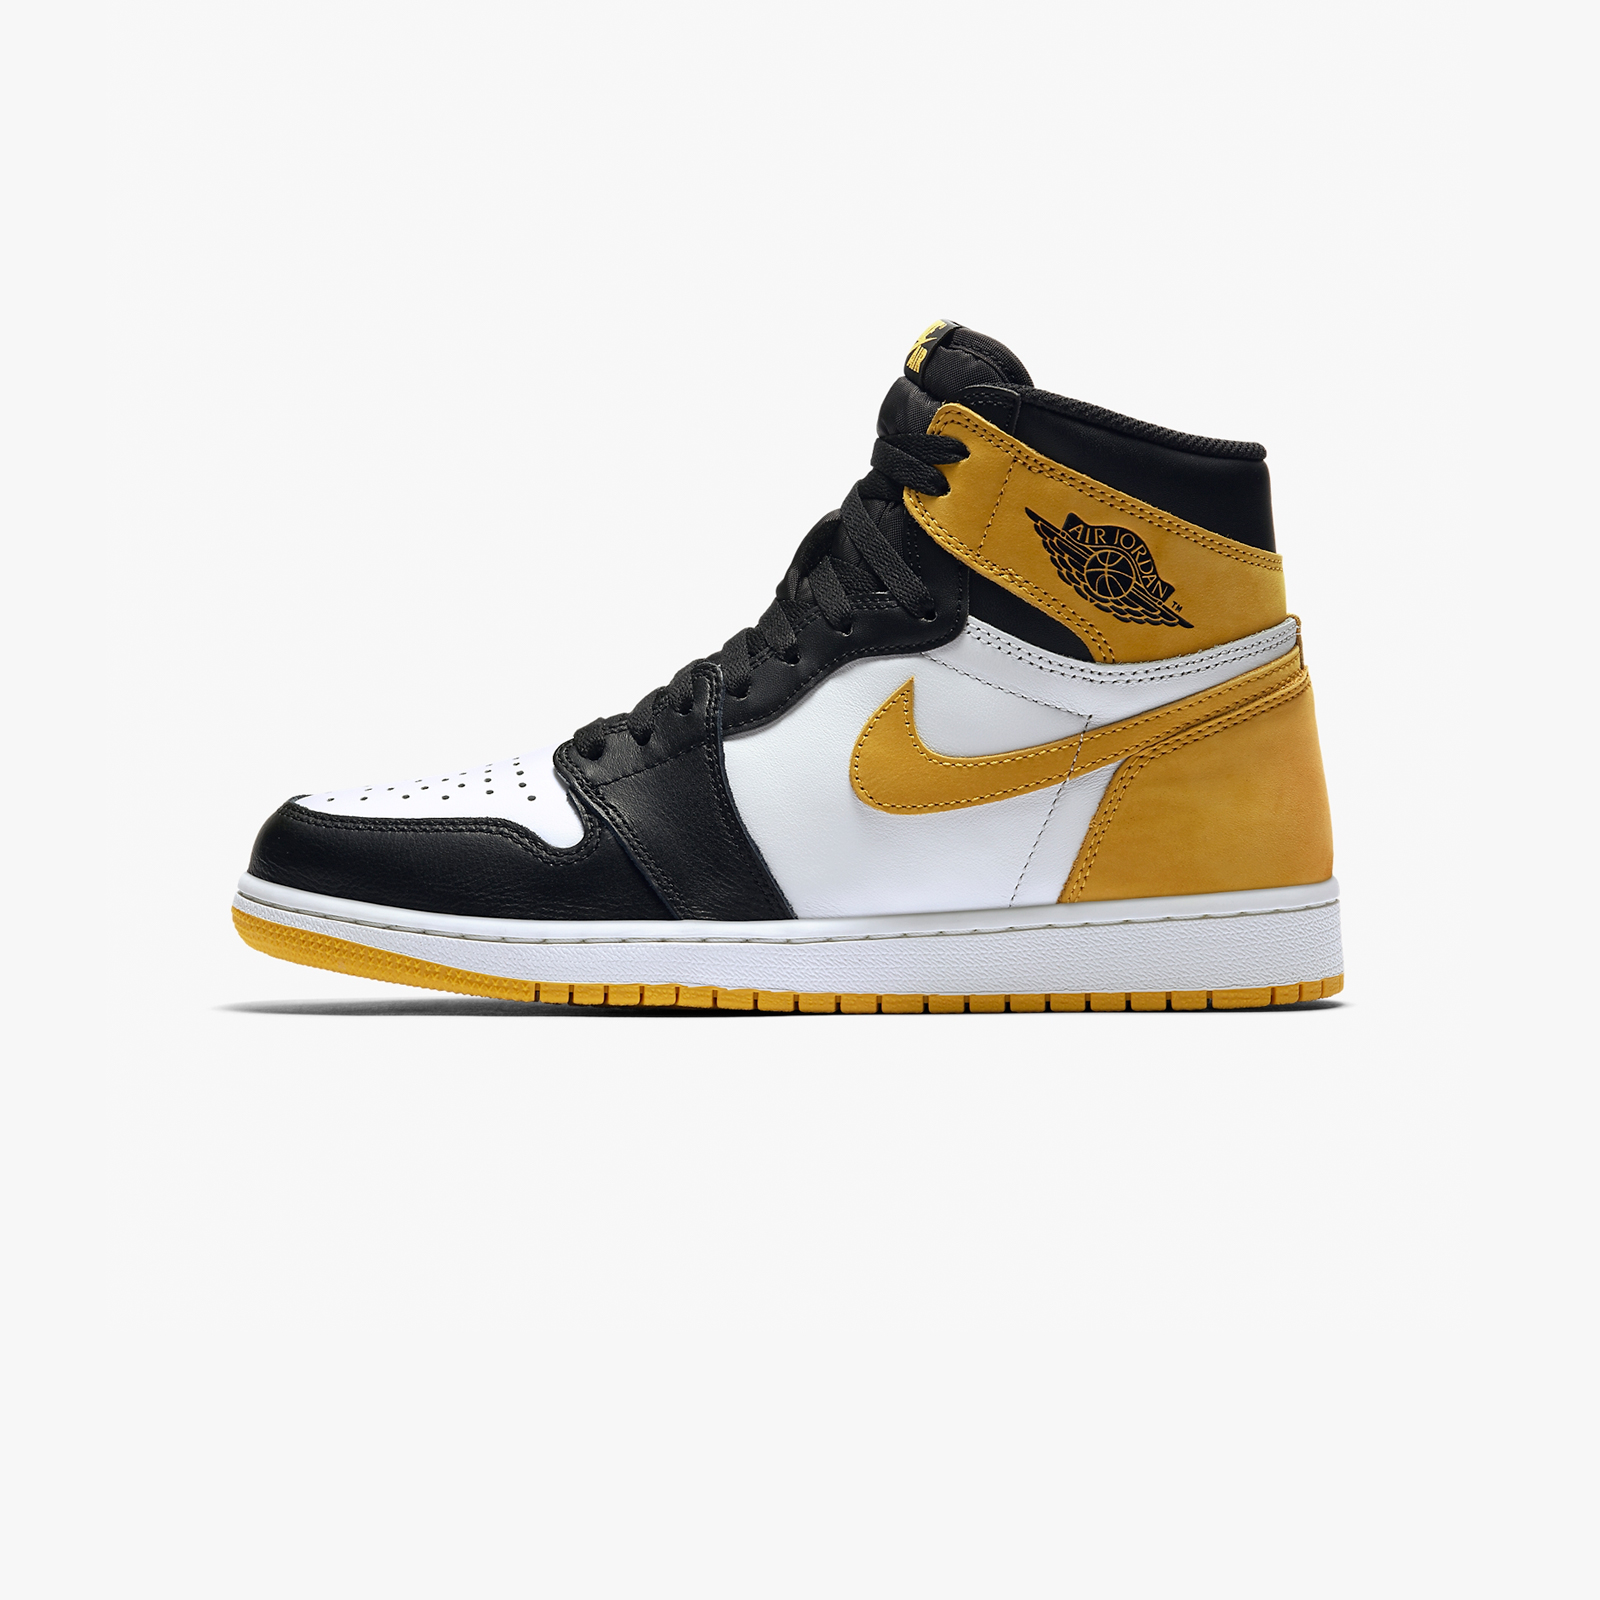 huge discount d3fda 65ce8 Jordan Brand Air Jordan 1 Retro High OG - 555088-109 - Sneakersnstuff    sneakers   streetwear online since 1999